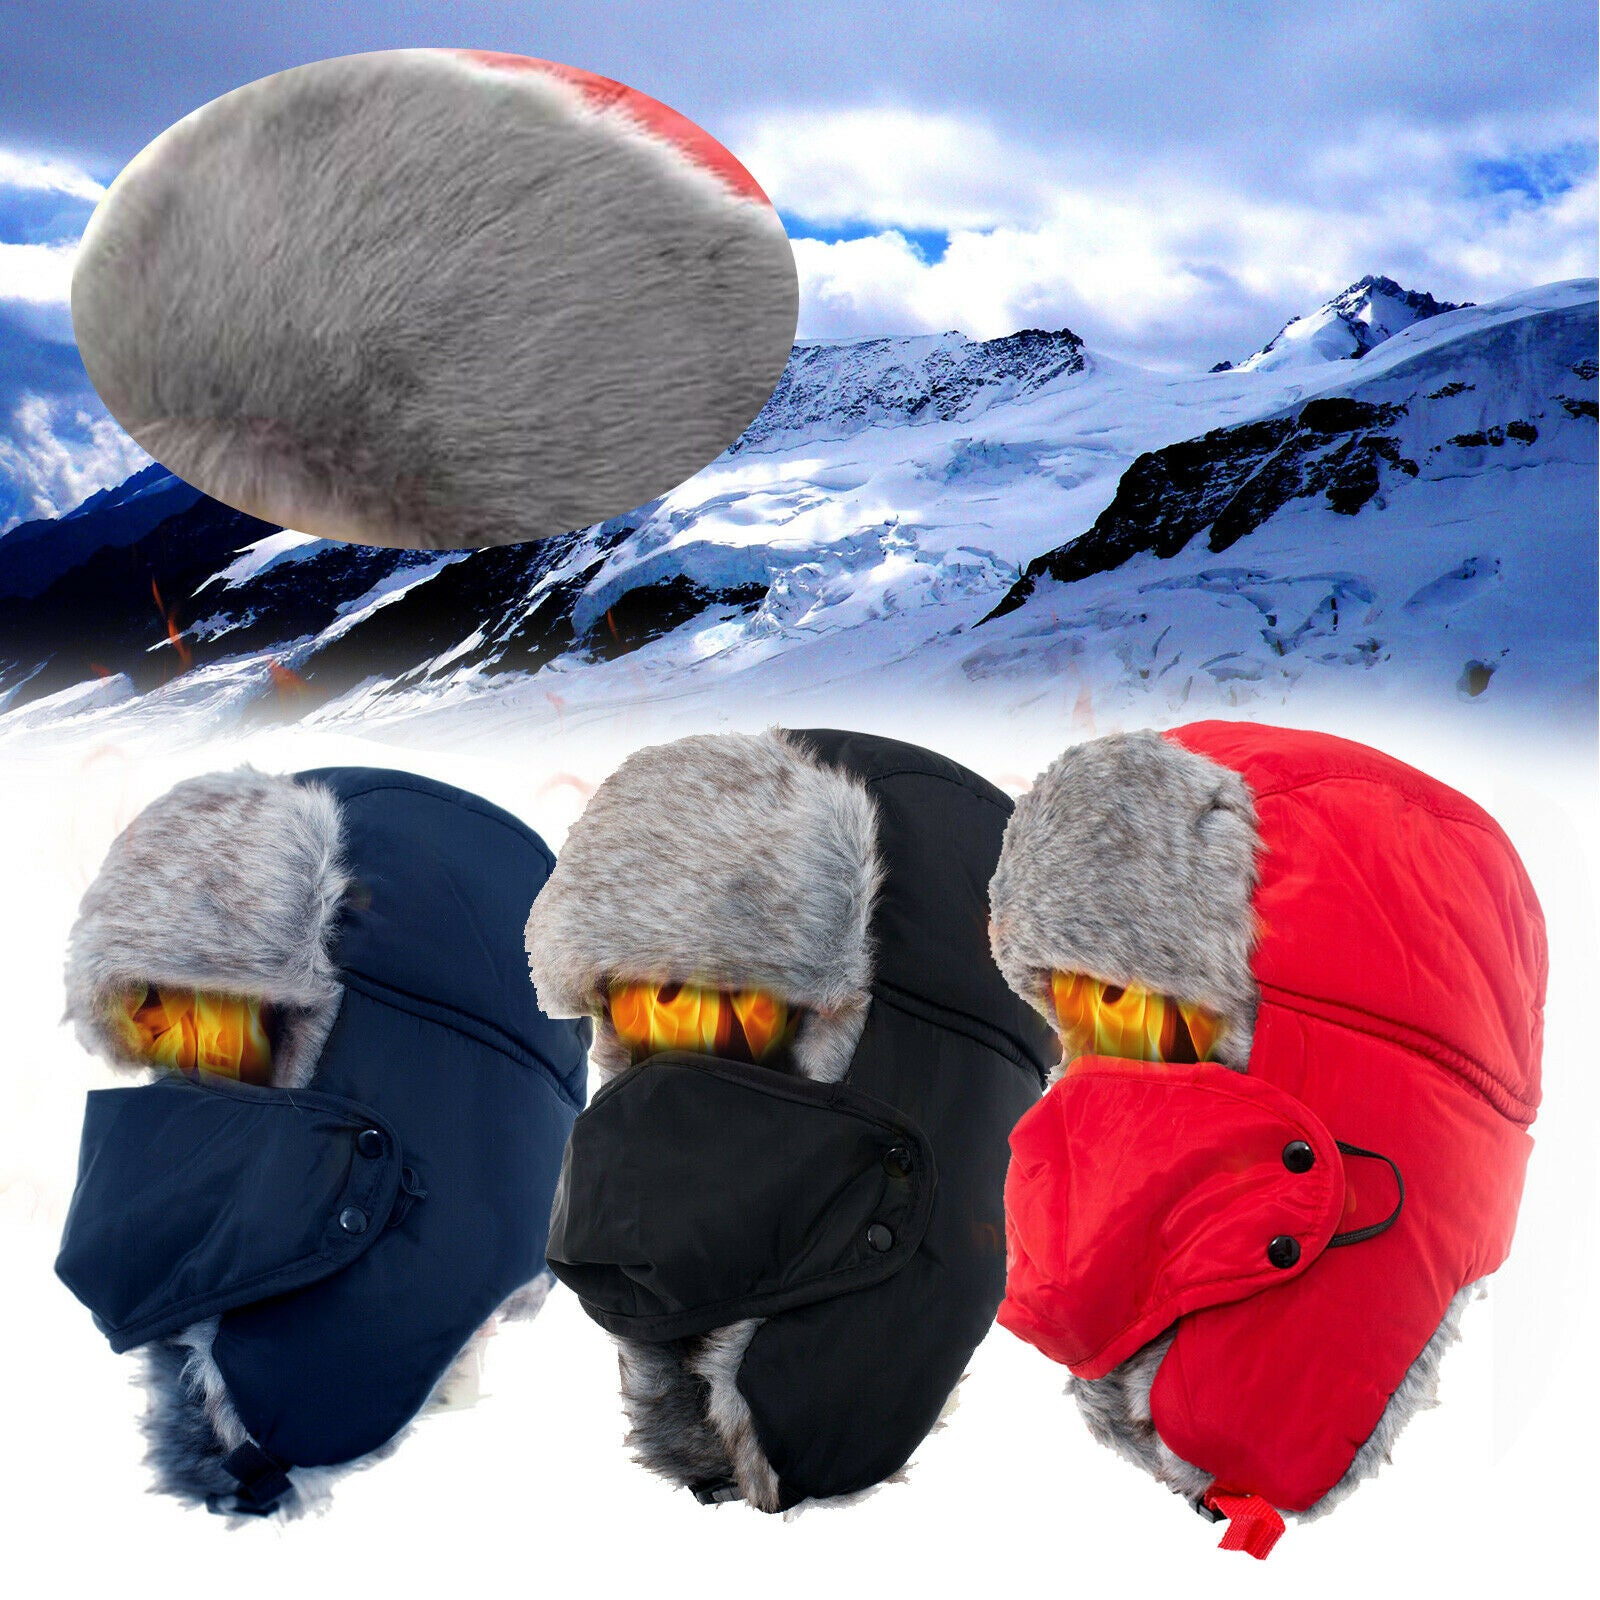 Unisex Maximum-Coverage Winter Trooper Hat - Assorted Colors